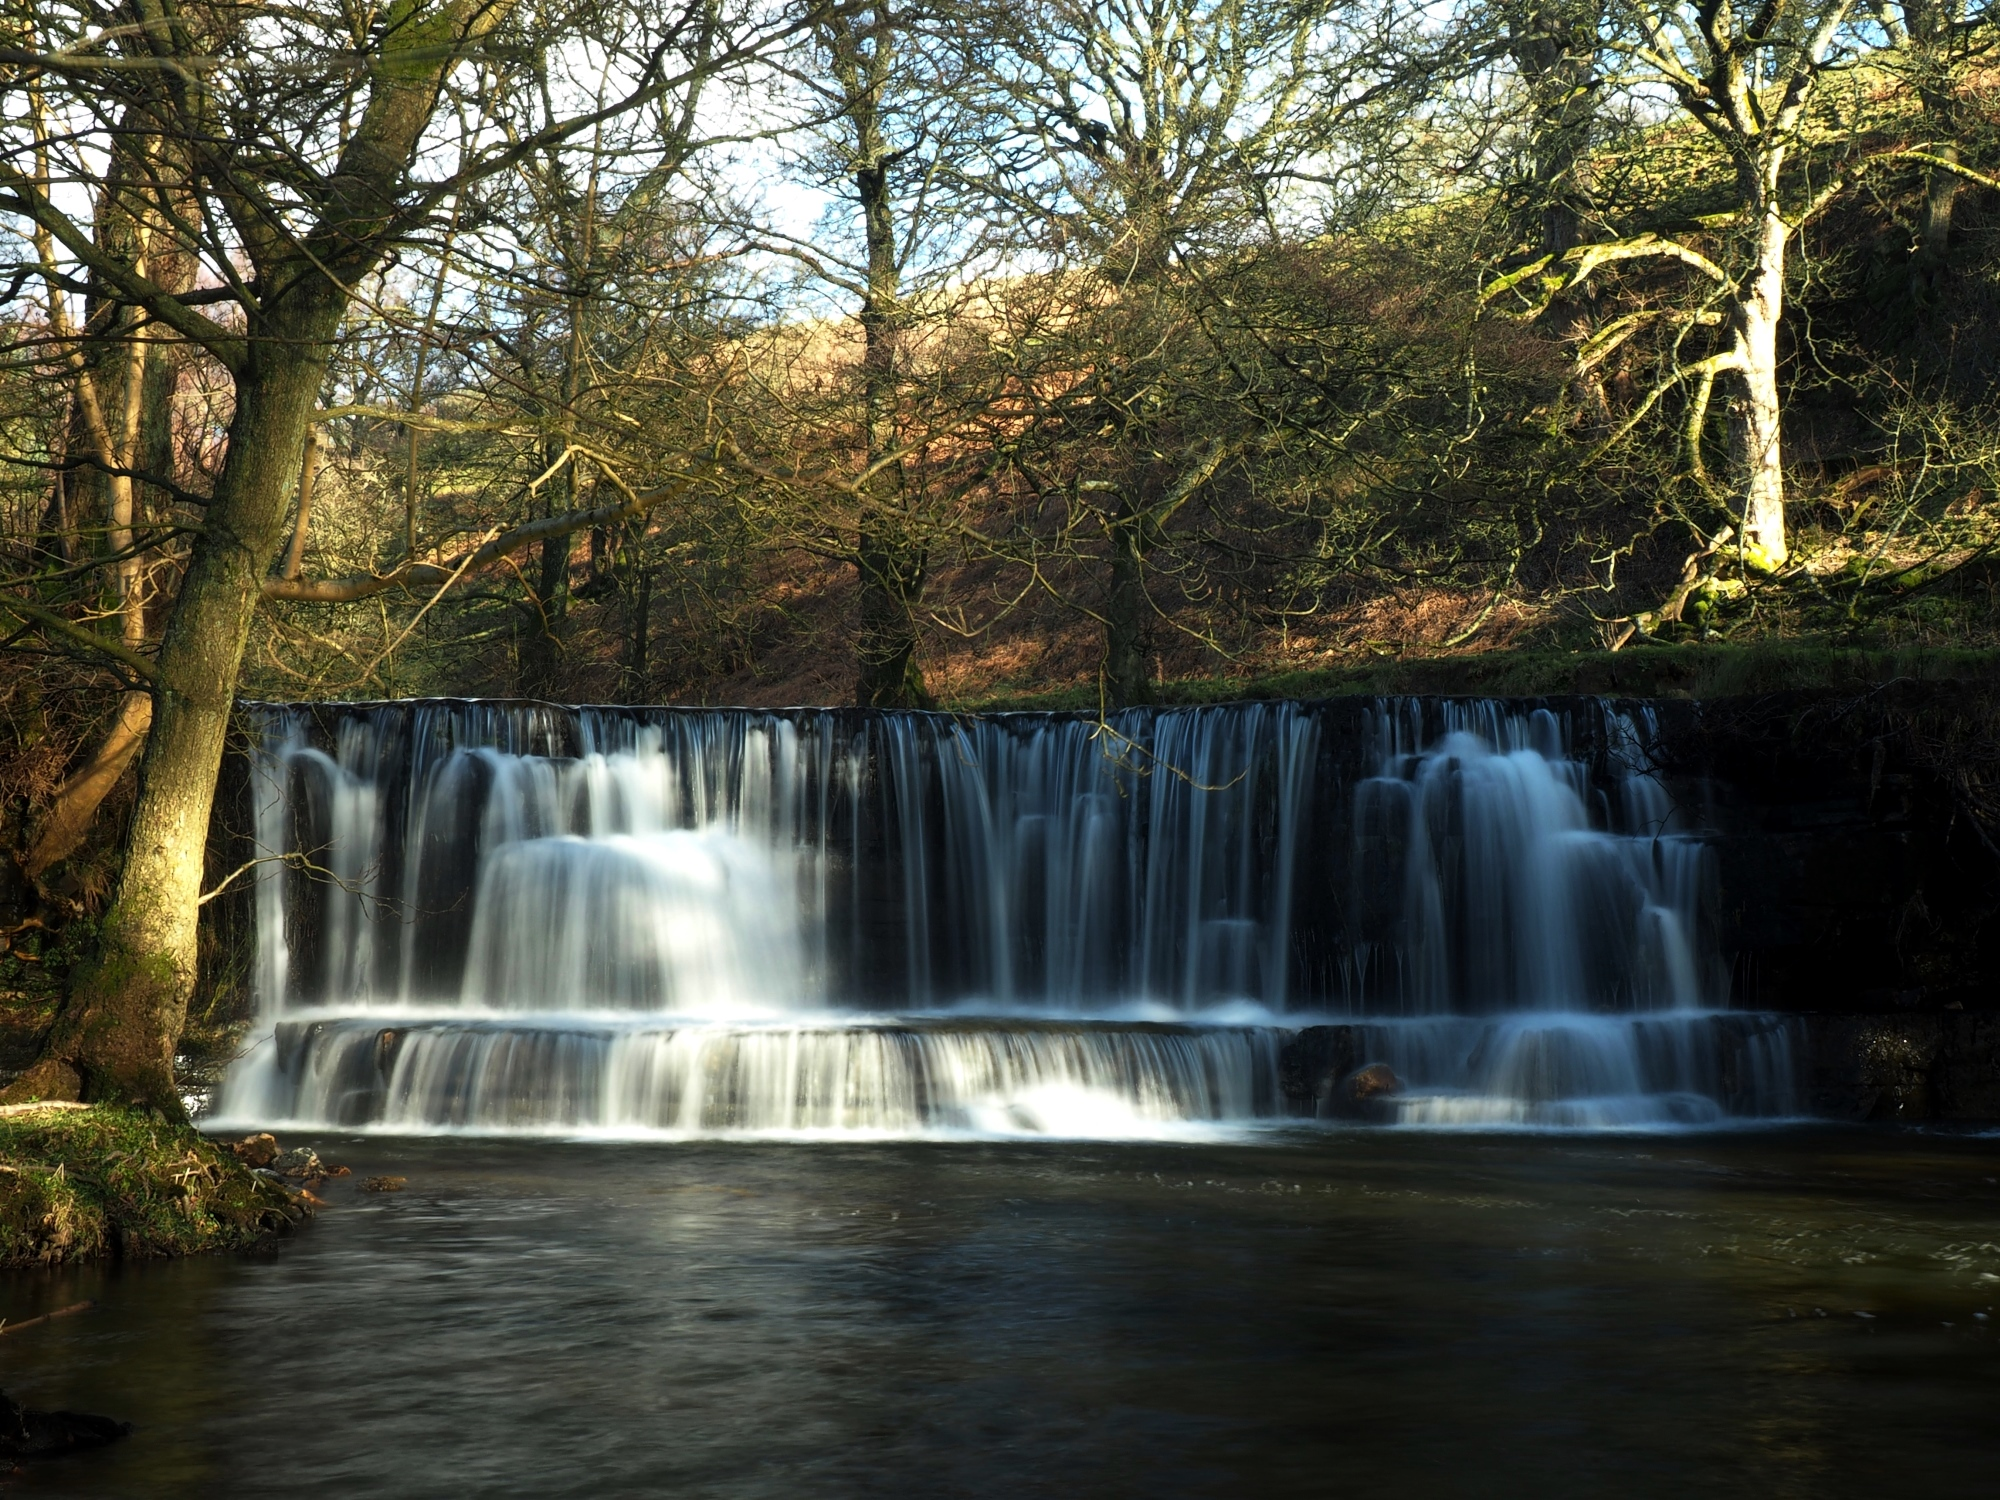 Nidd Falls, one of the lesser known waterfalls in the Yorkshire Dales